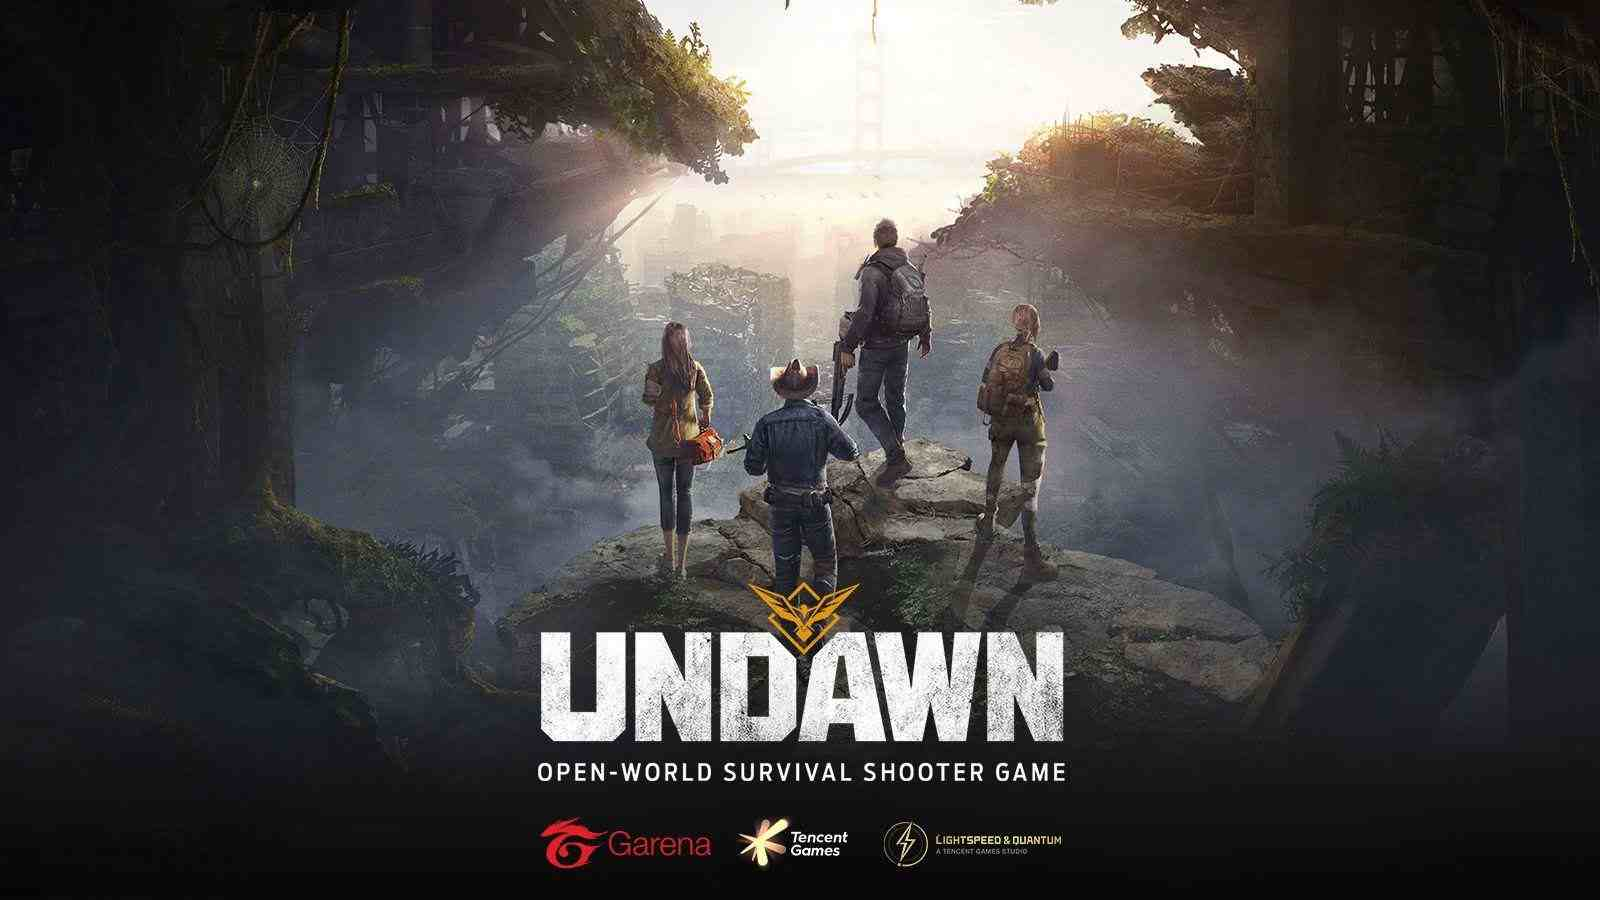 brand new survival shooter game Undawan